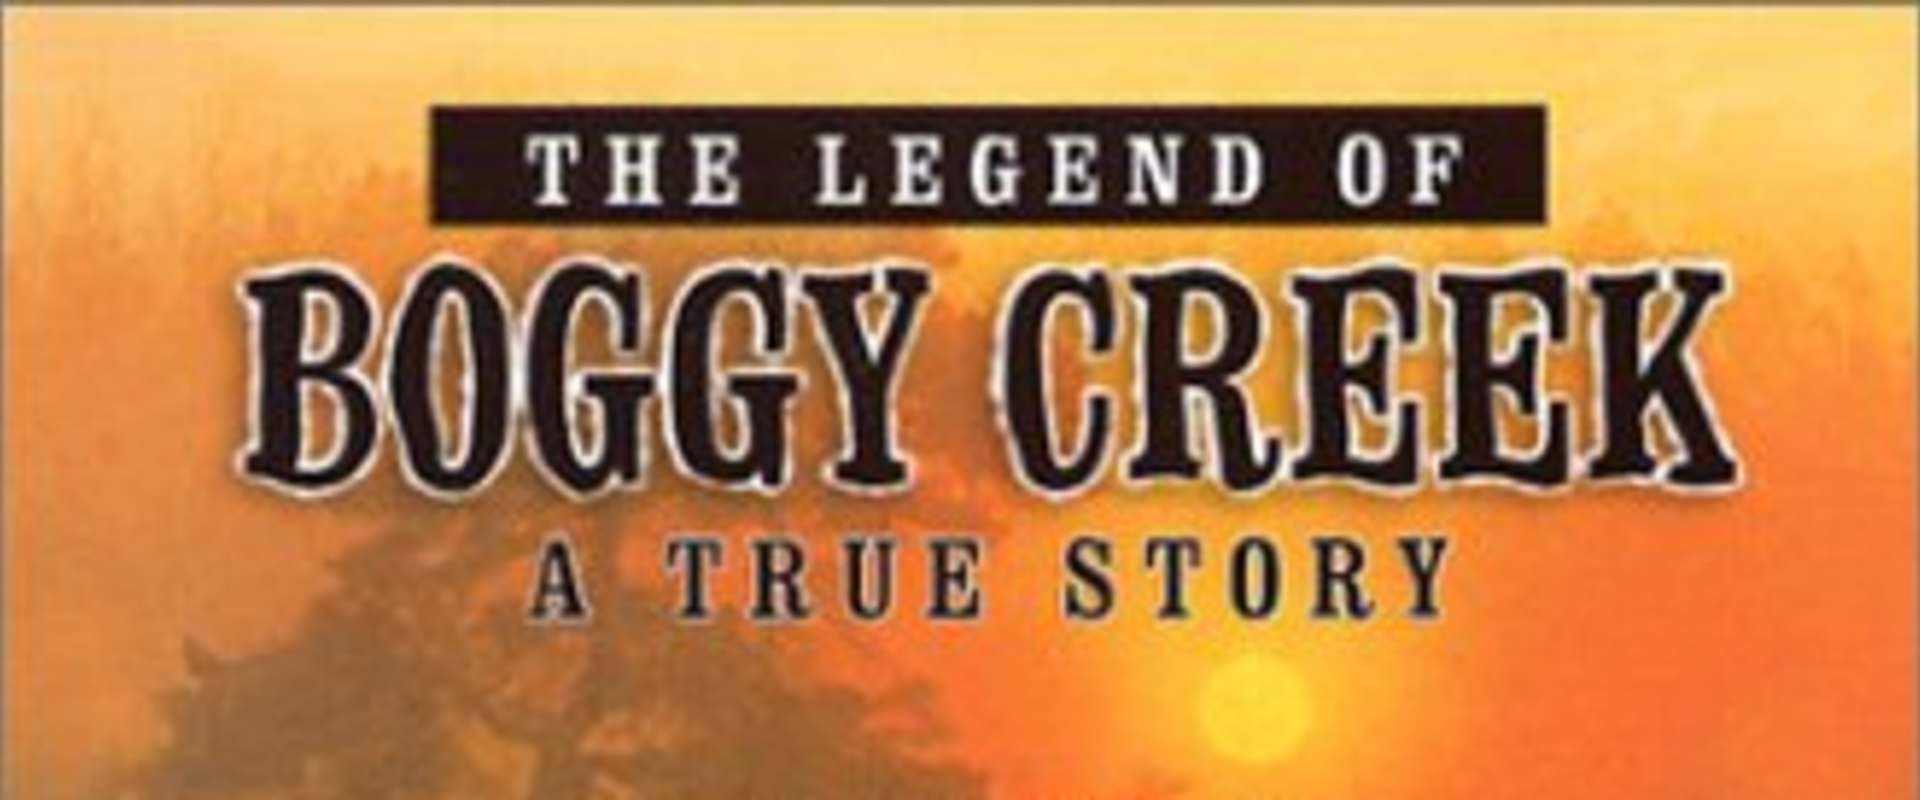 The Legend of Boggy Creek background 2